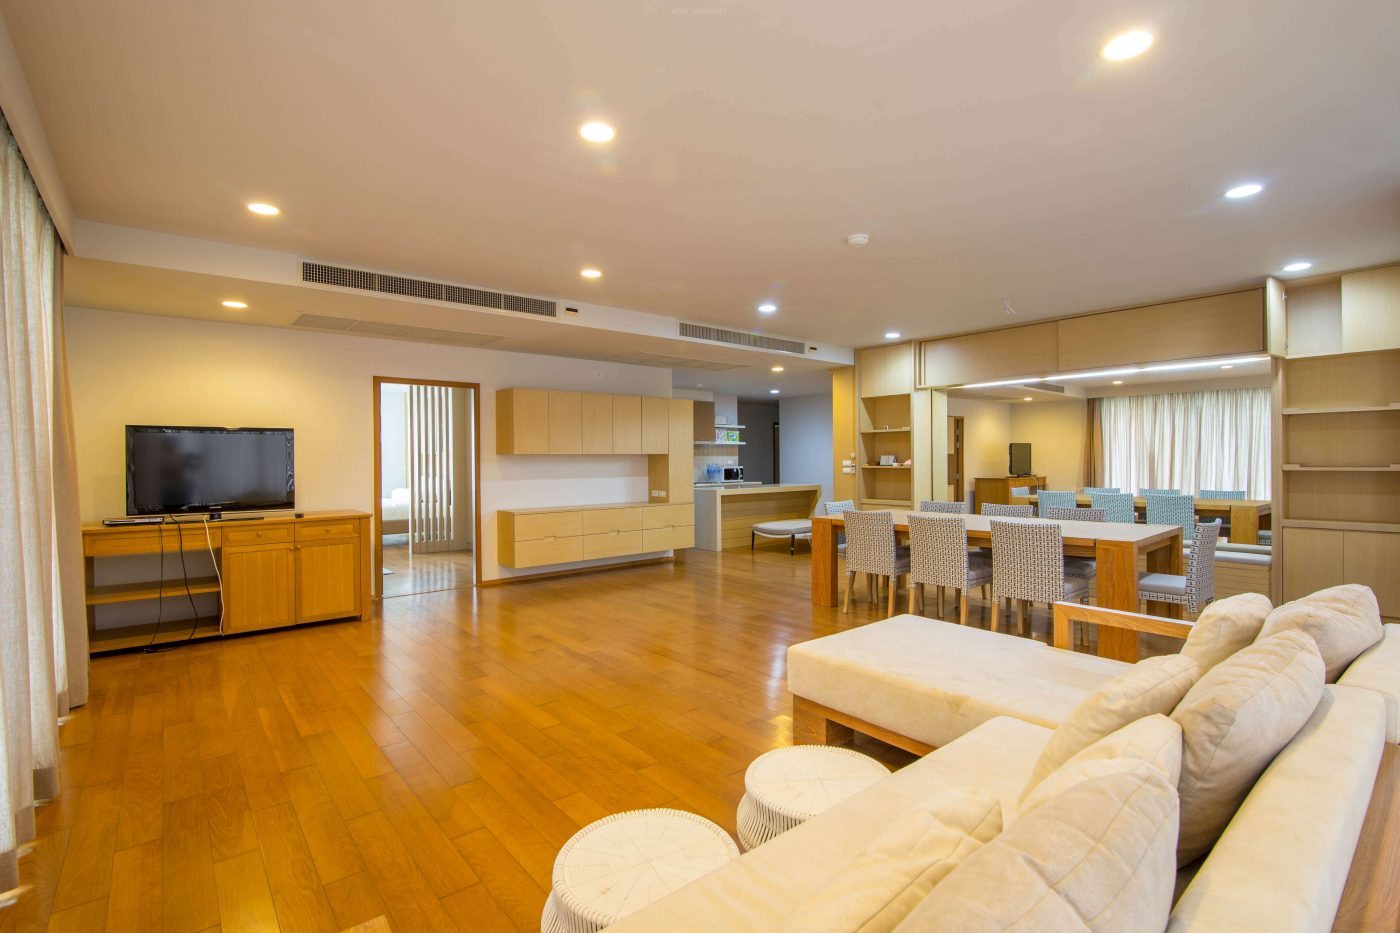 3 Bedroom apartment for sale hua hin